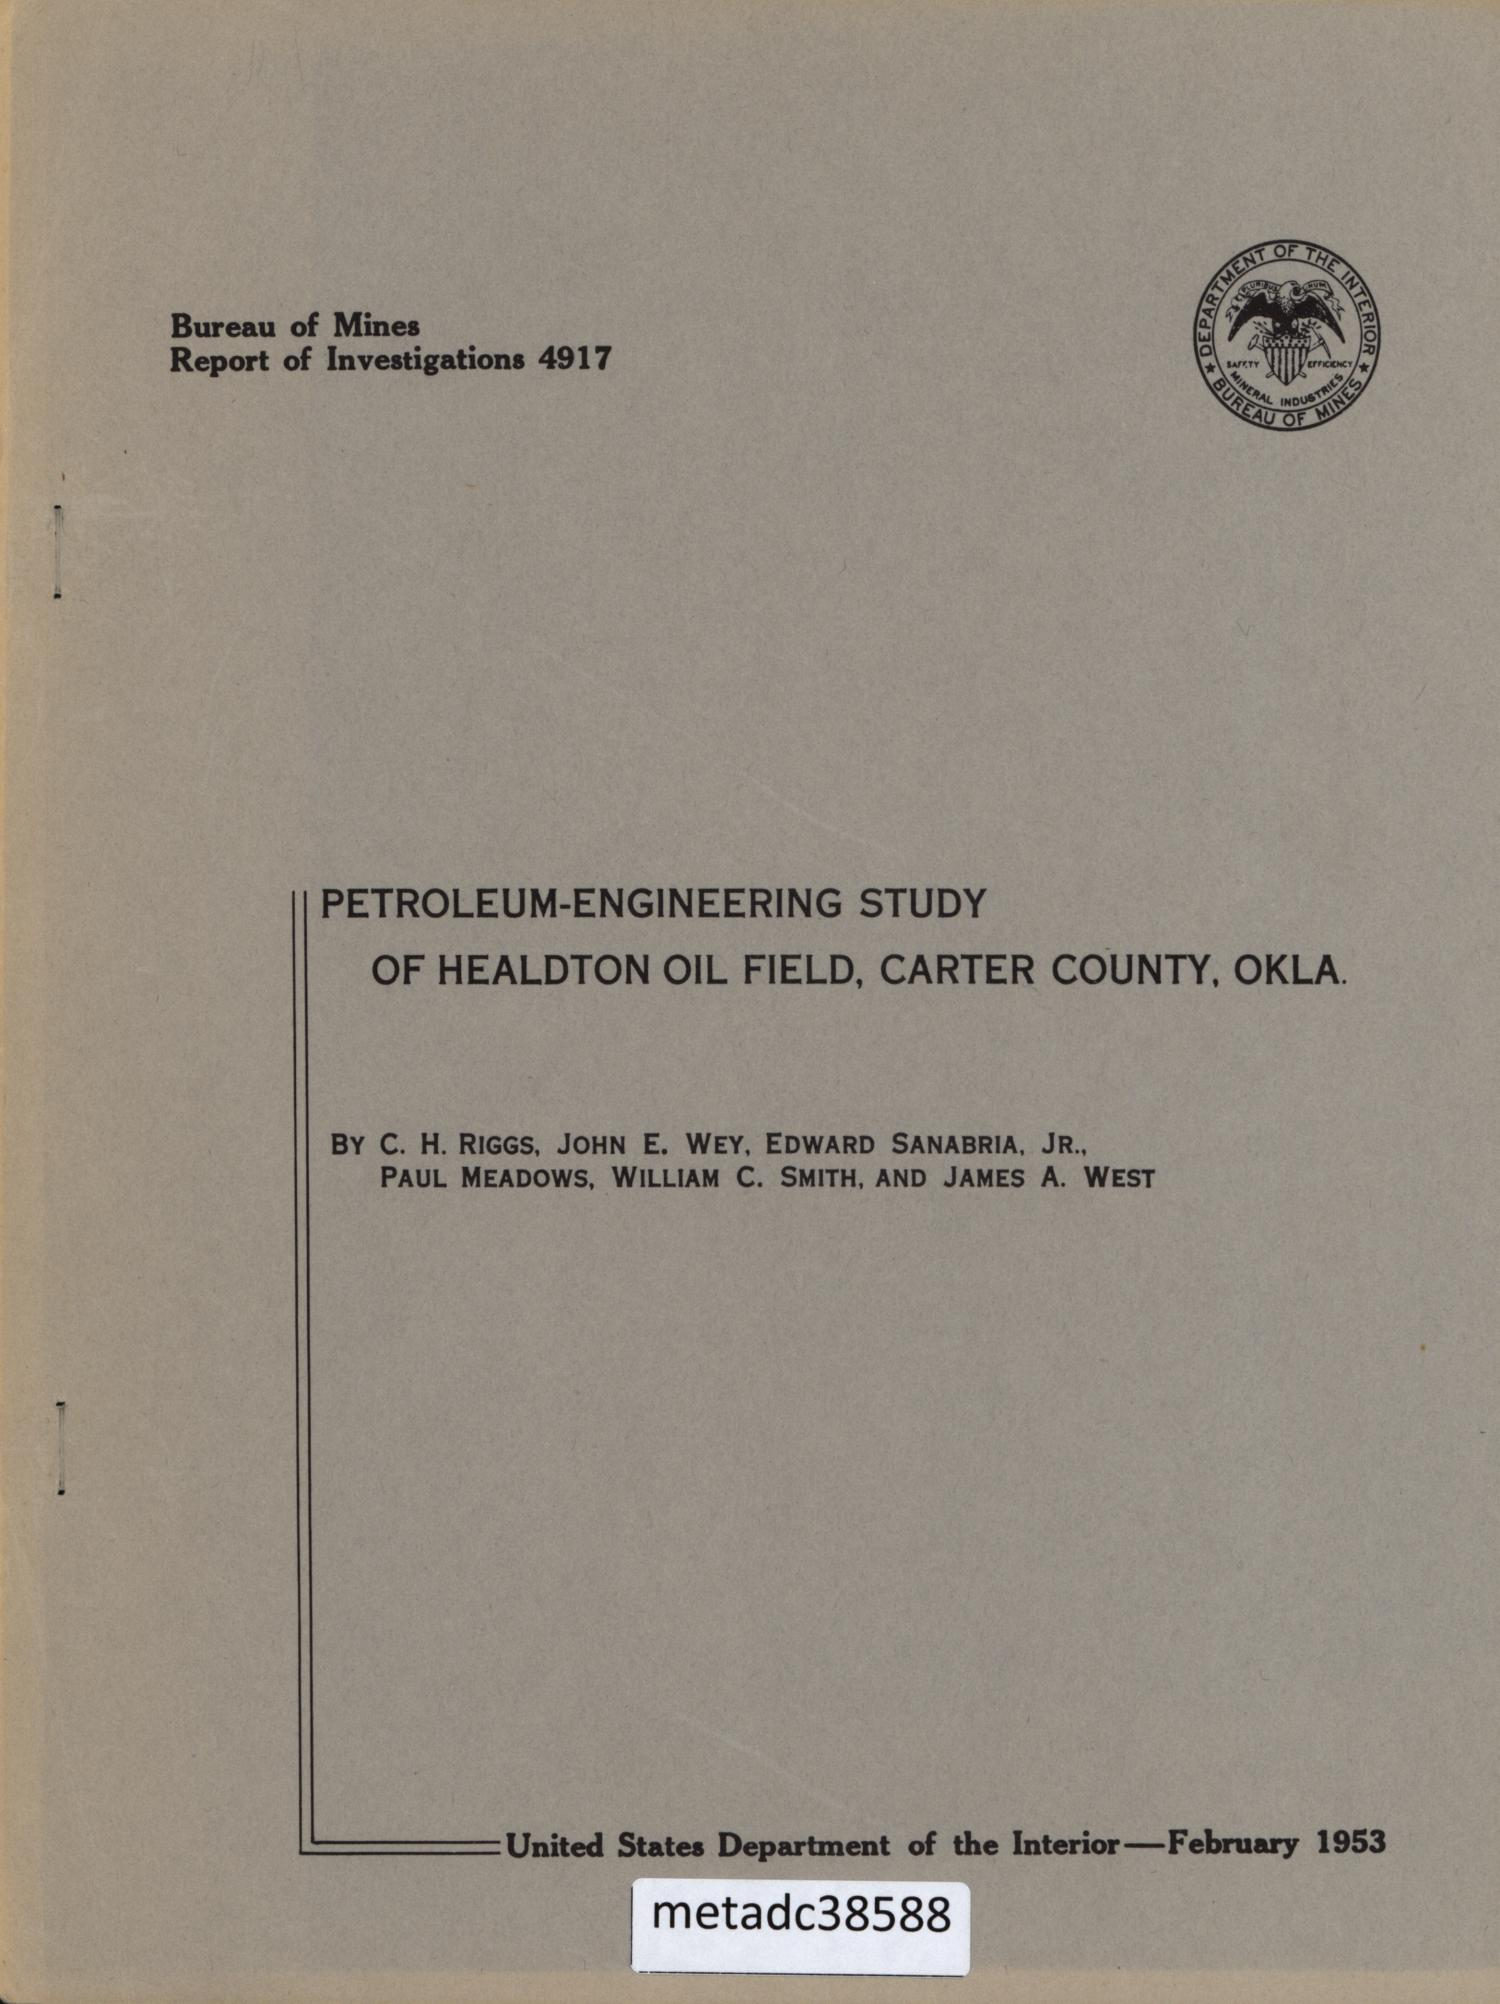 Petroleum-Engineering Study of Healdton Oil Field, Carter County, Oklahoma                                                                                                      Front Cover